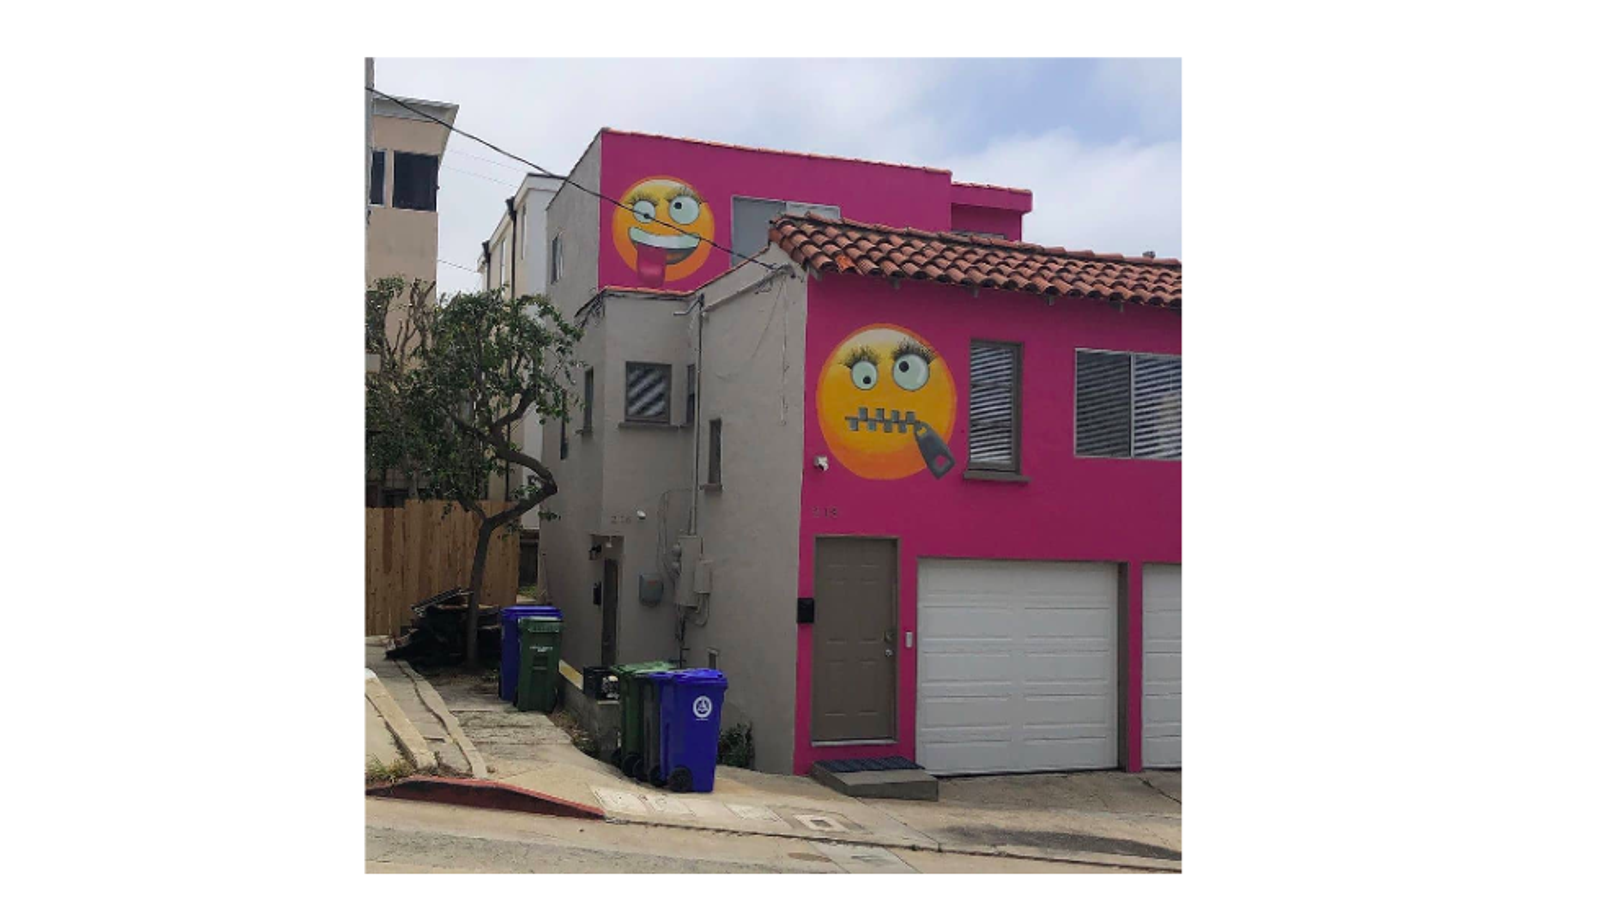 California Woman Spites Neighbor With Hot Pink Emoji House-5544